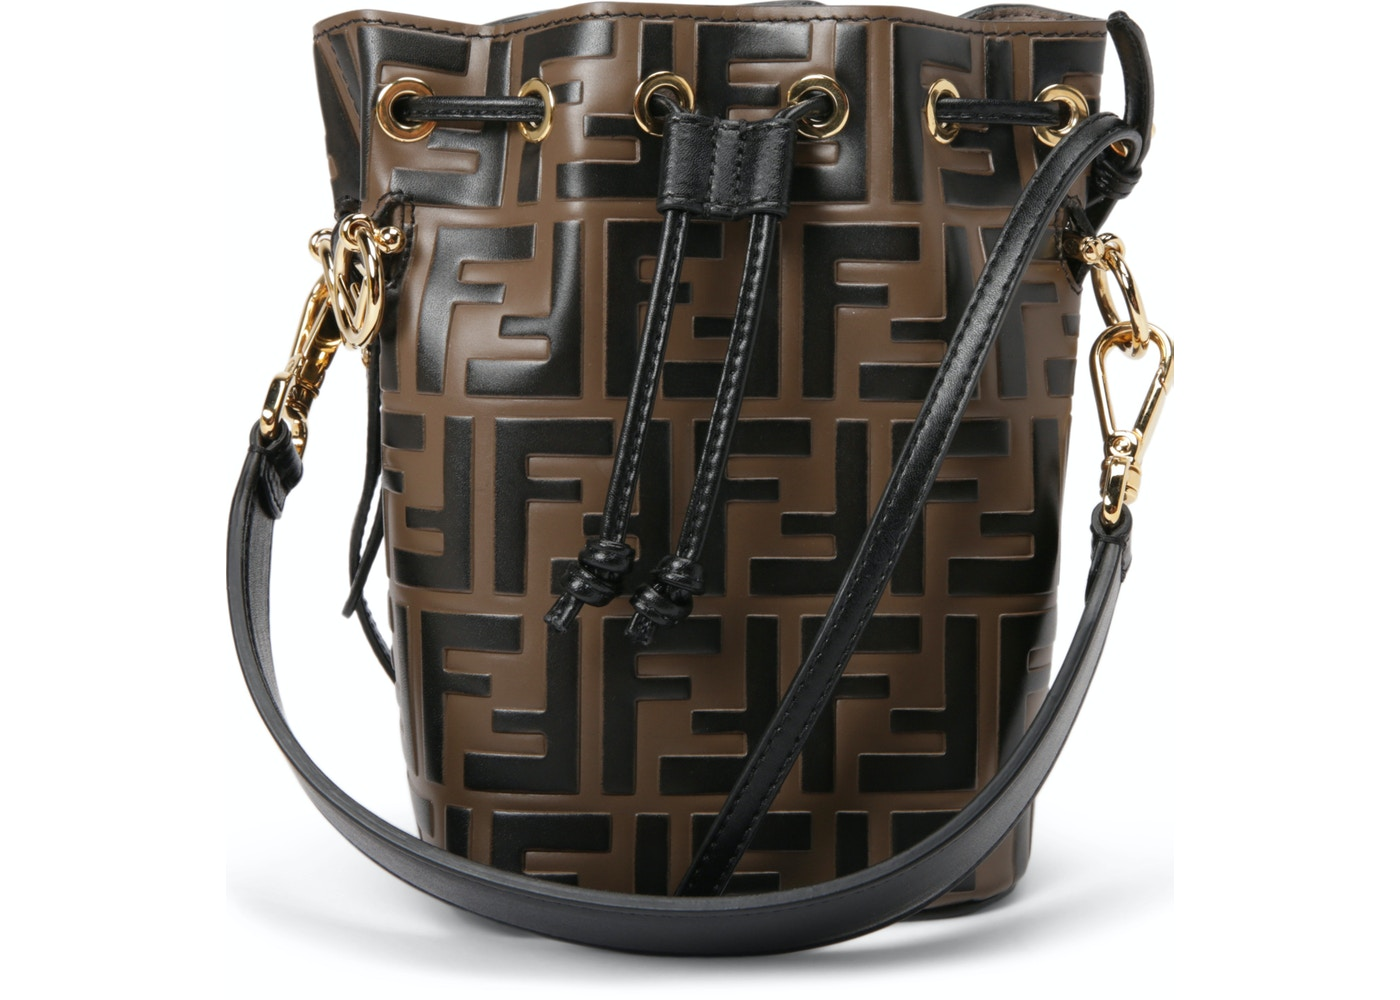 495ceda60a60a Fendi Mon Tresor Bucket Bag Zucca Embossed Small Tobacco Black. Zucca  Embossed Small Tobacco Black